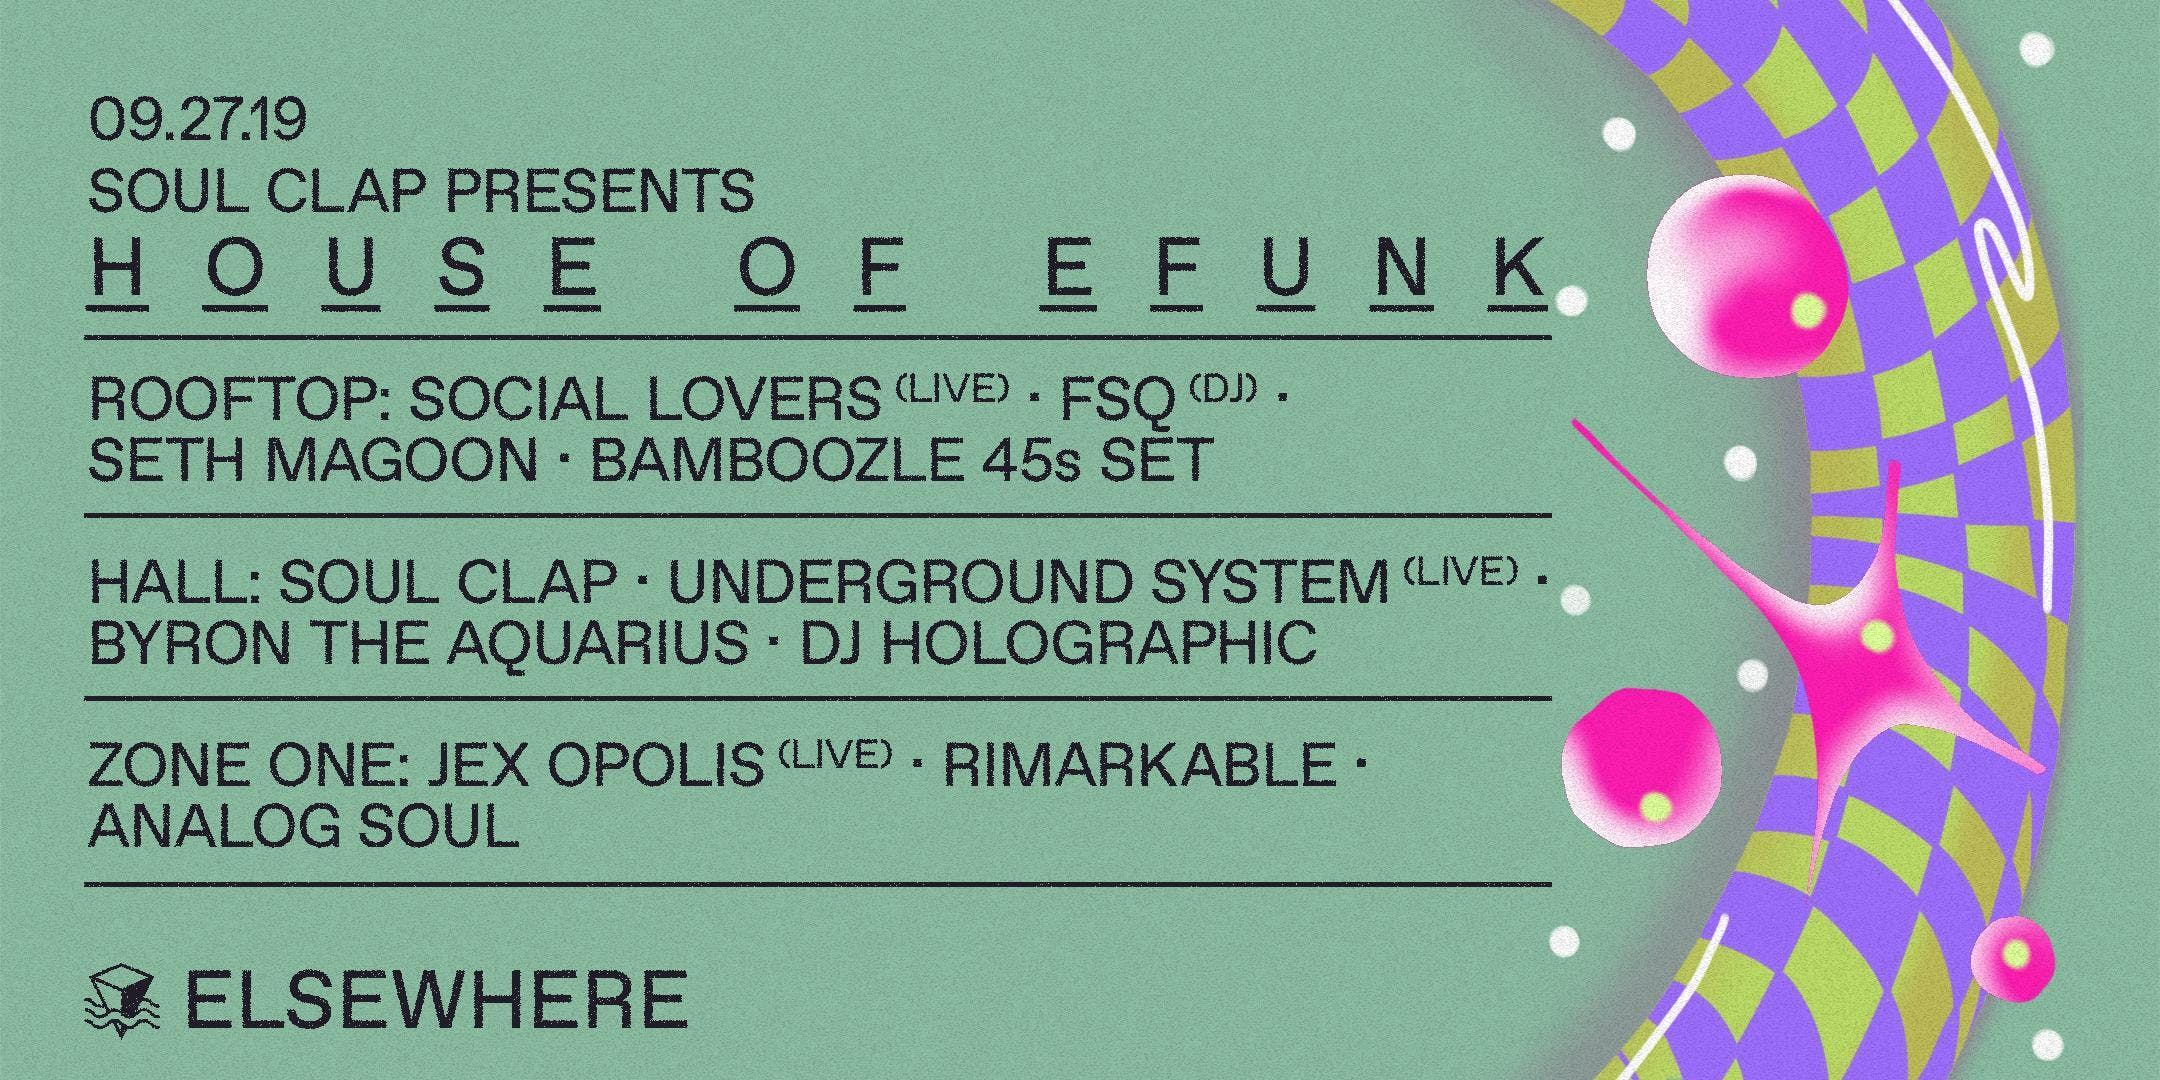 Soul Clap Presents: House of EFUNK w/ Underground System (live), Byron the Aquarius, DJ Holographic, Soul Clap and More